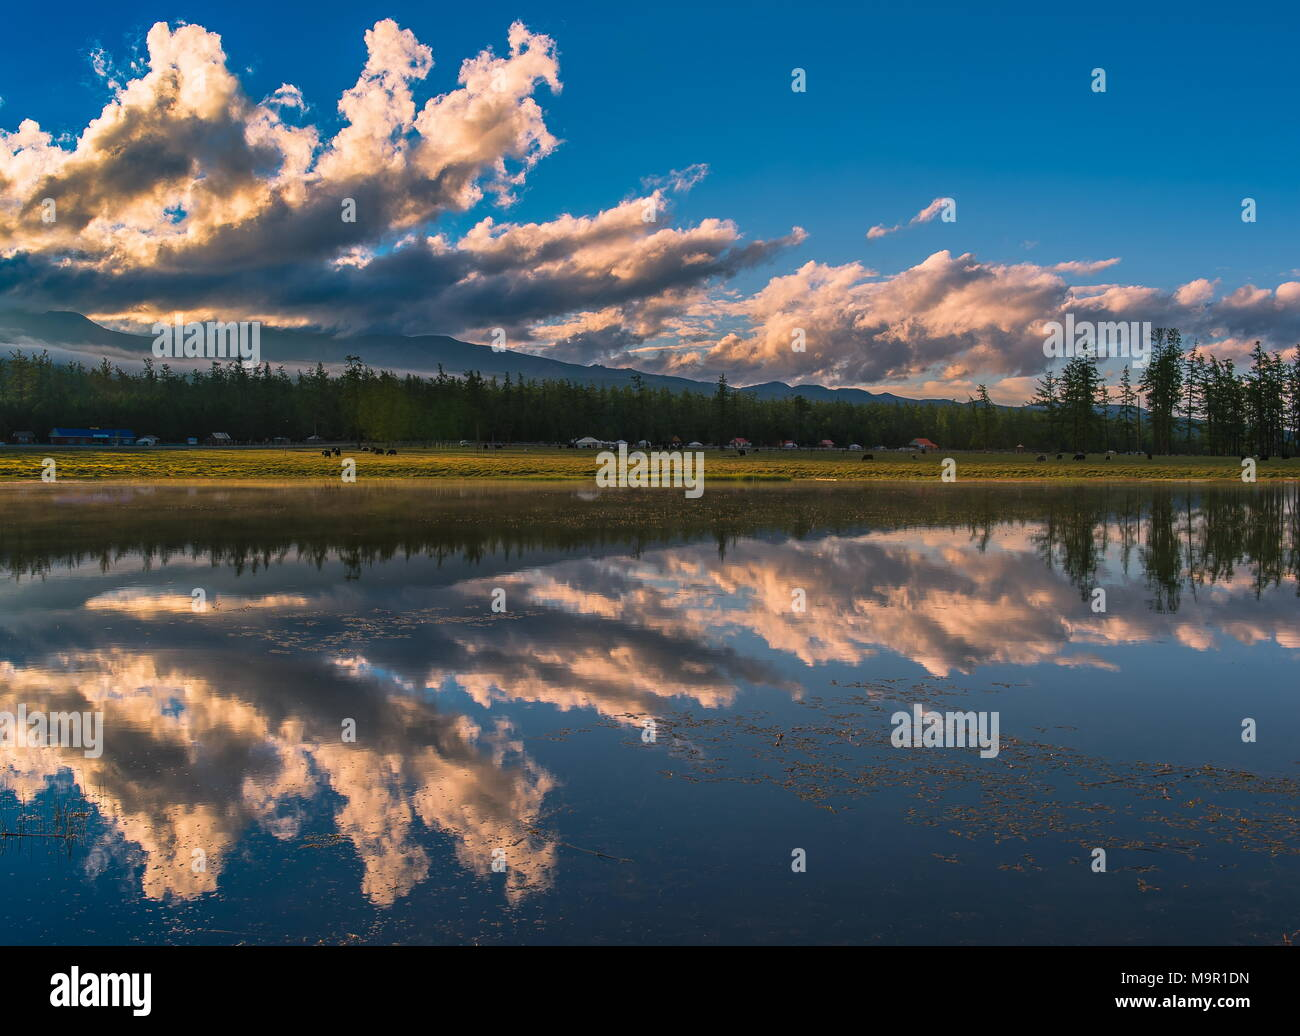 Khuvsgul Lake with dramatic clouds and water reflections, Mongolia - Stock Image